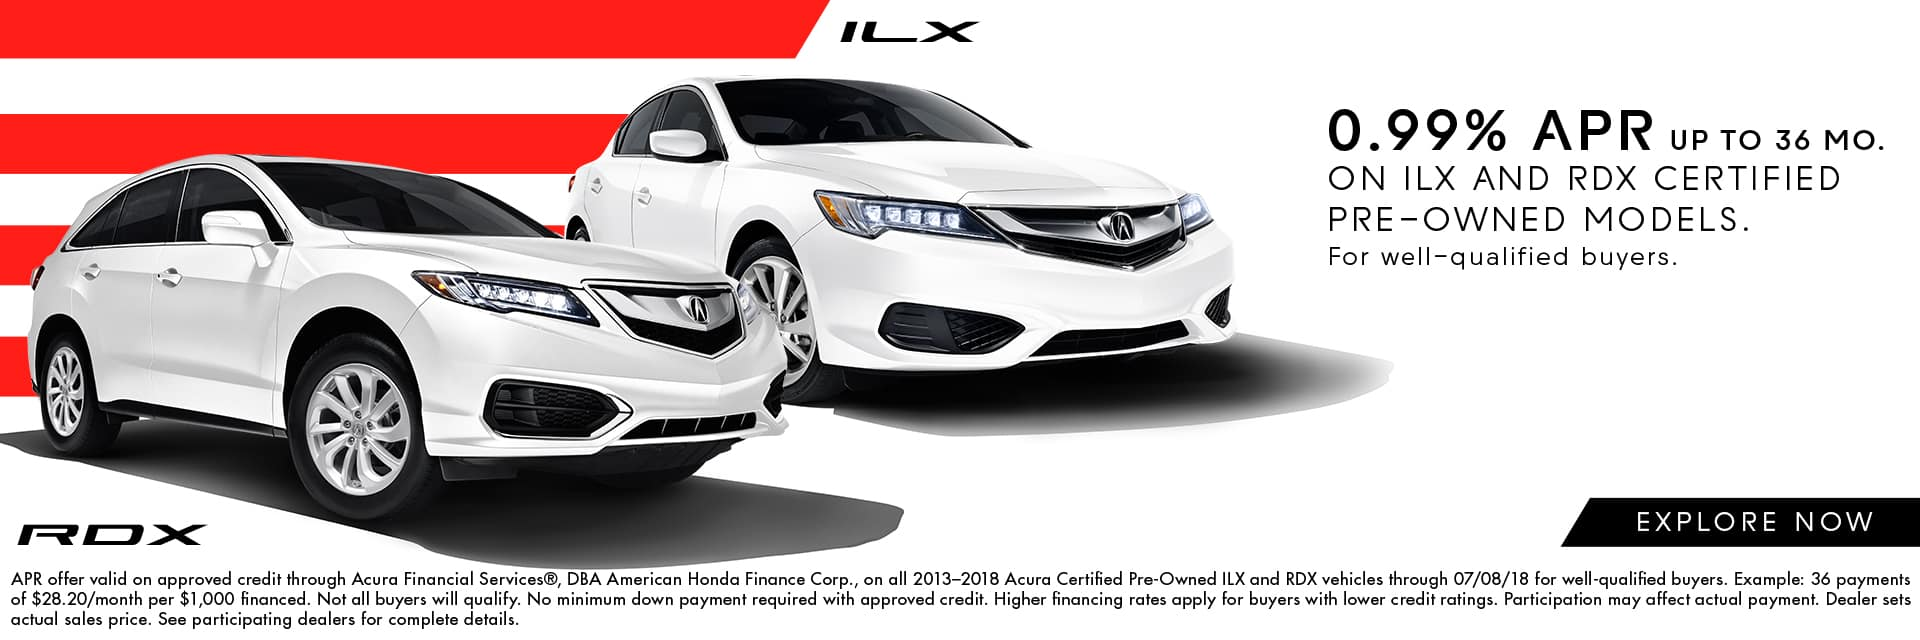 chicagoland acura pre dealers wadvance car tlx pkg owned inventory advance awd chicago certified w